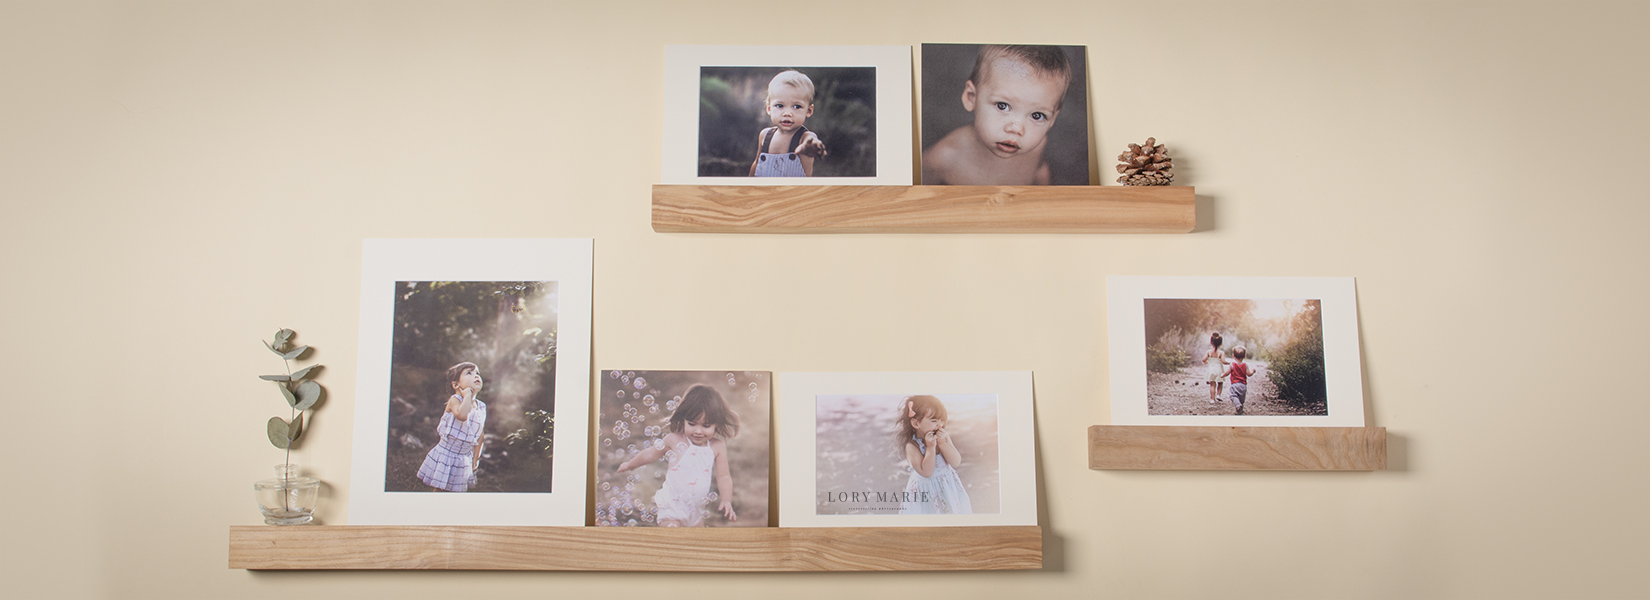 Wooden Photo Ledge for Professional Photographers